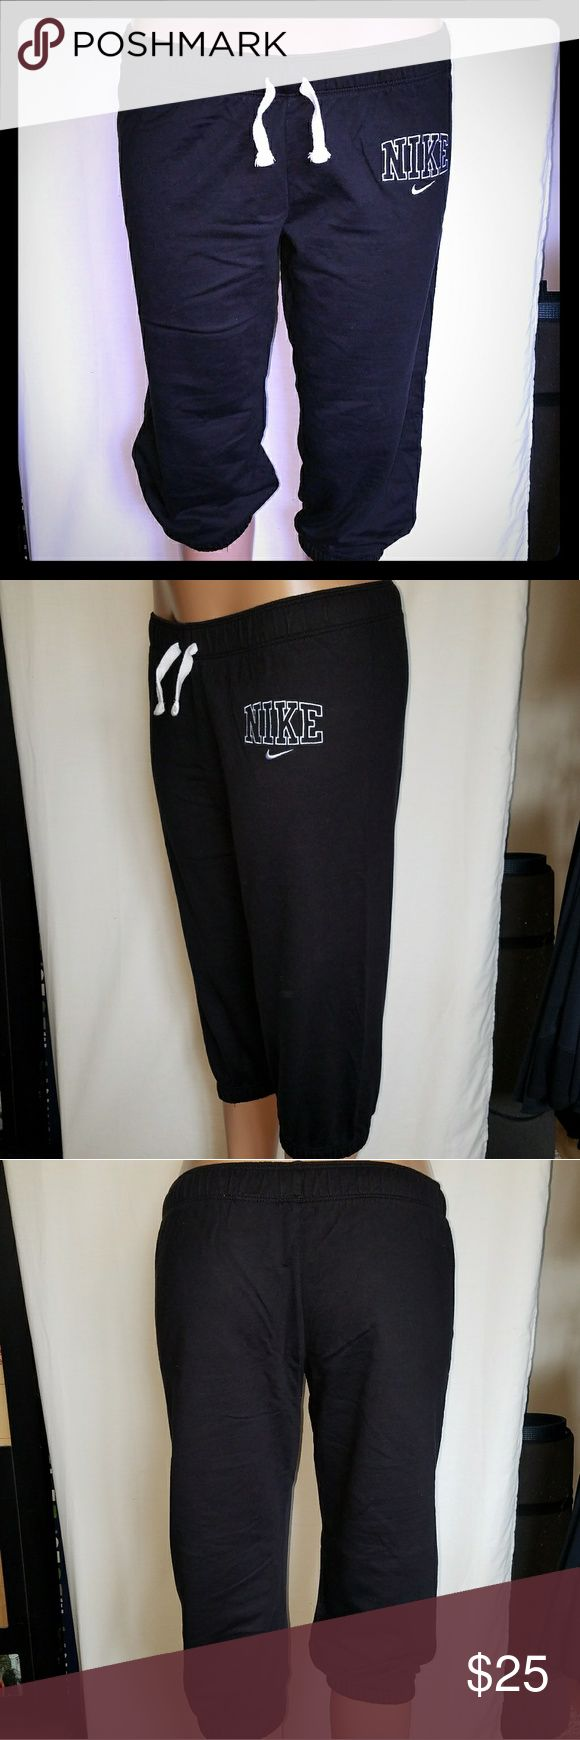 "NEW Nike Crop Jogger Sweatpants Sz Lrg *Black* NWOT Nike Crop Sweatpants  Size: Large  Color: Black & White Inseam: Approx 18 1/2"" Drawstring waistband  *Tag NOT attached* Nike Pants Track Pants & Joggers"